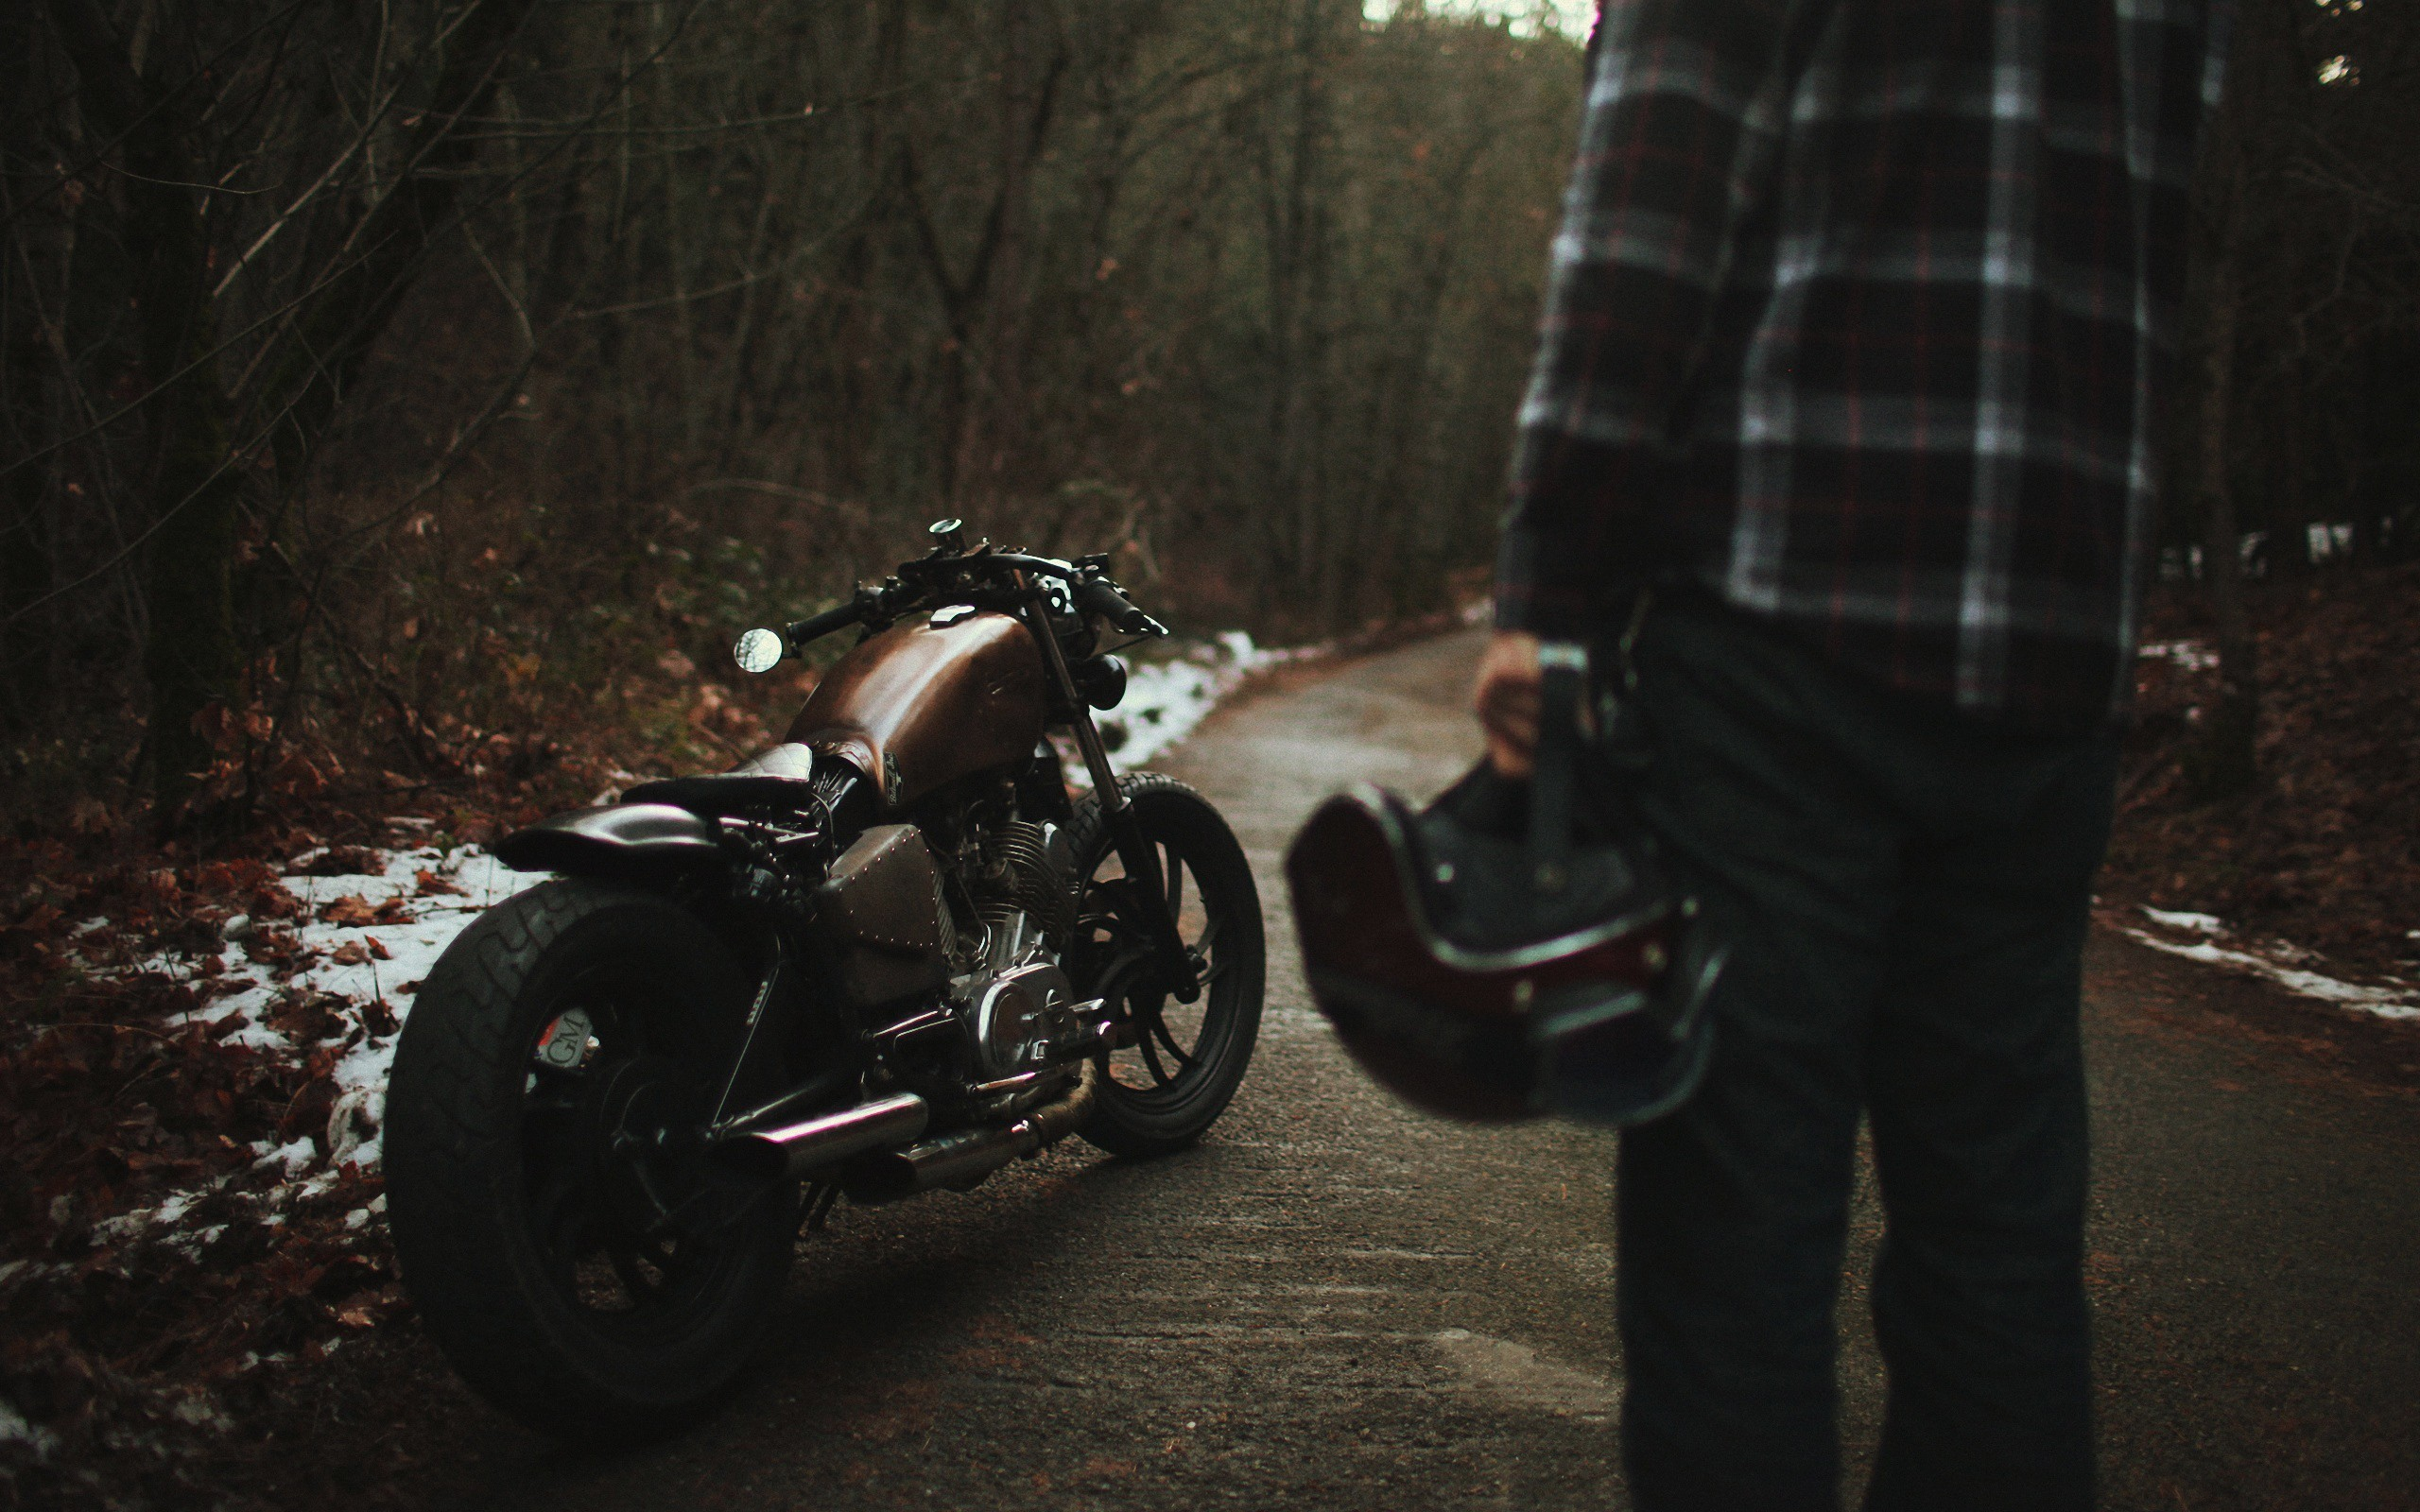 Res: 2560x1600, Download Original Wallpaper Category:bikes and motorcycles ...